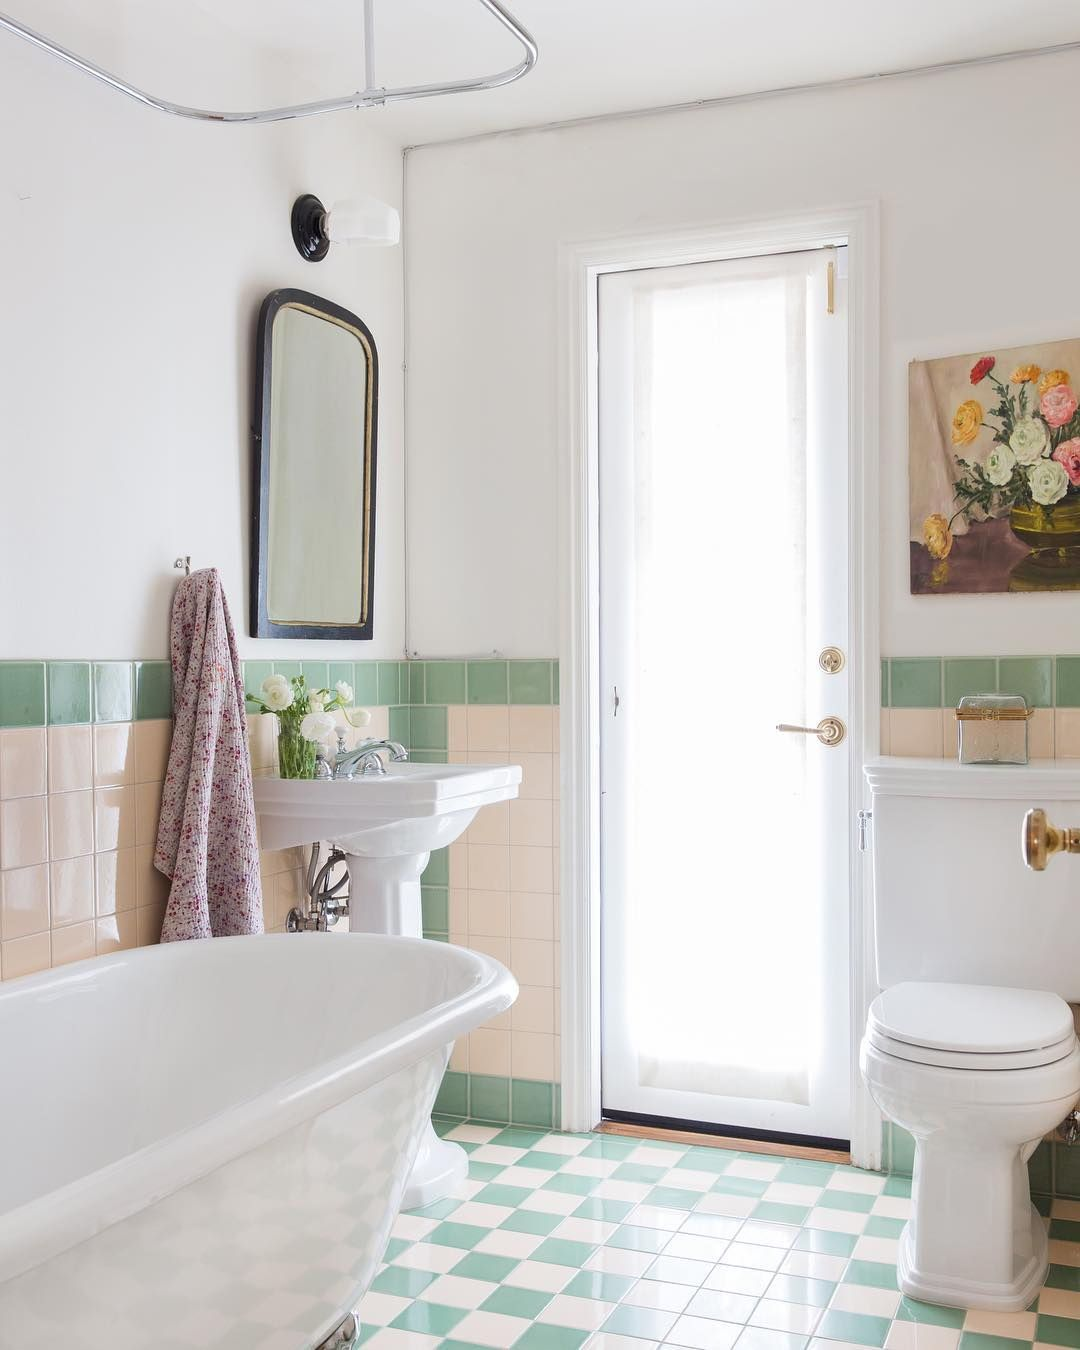 The Green And White Checkered Floors And Matching Tiled Walls Combined With A Pedestal Sink And Clawfoot Tub Hel White Bathroom Clawfoot Tub Vintage Bathroom